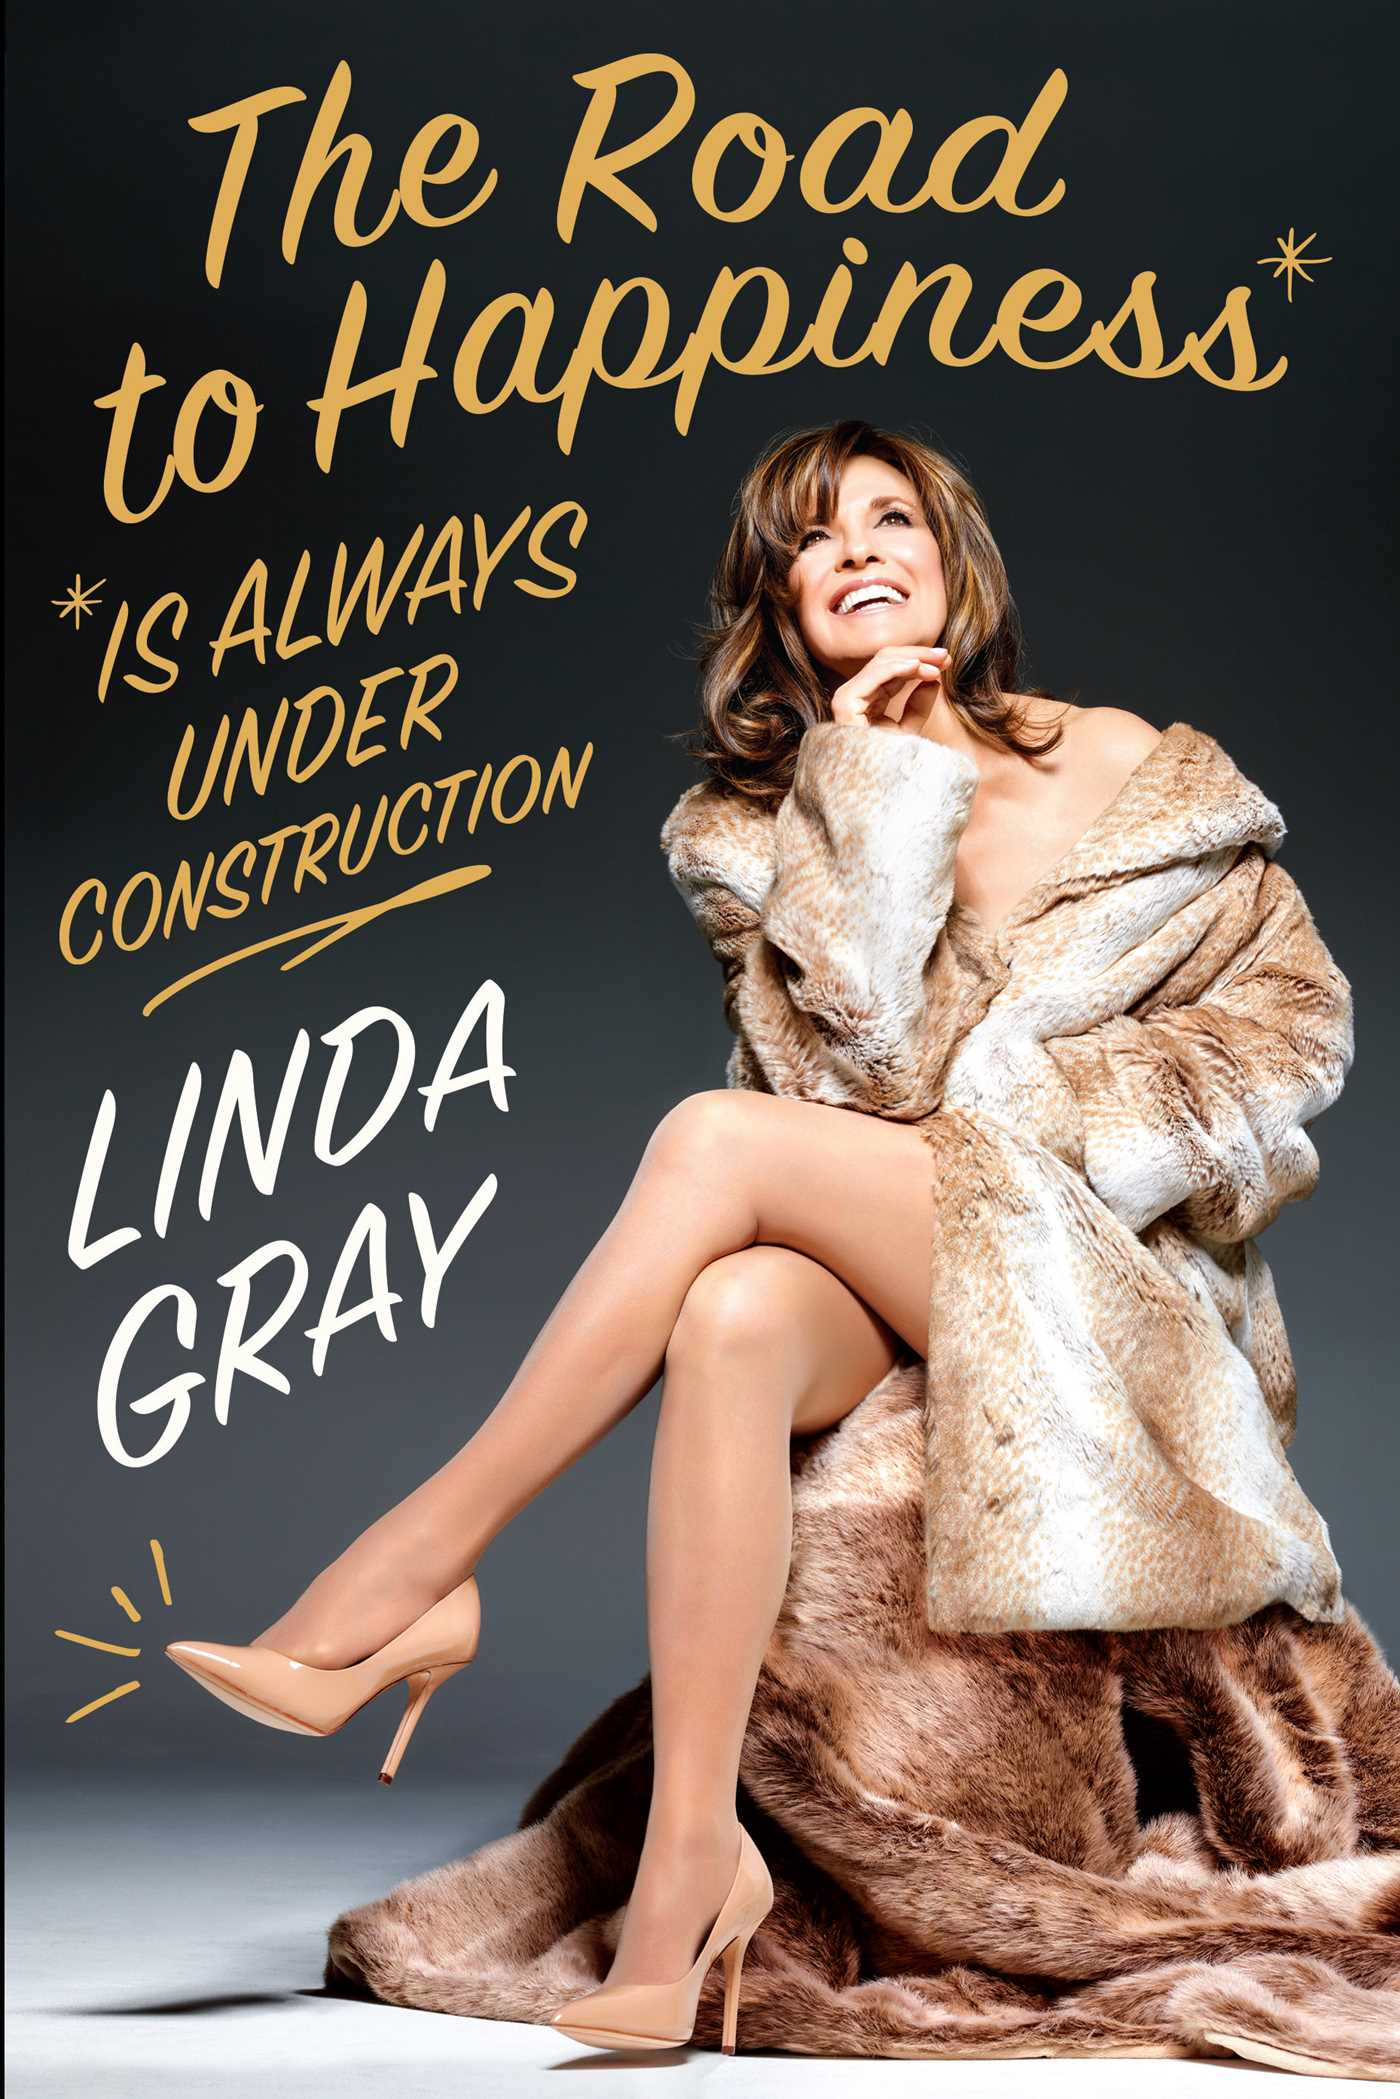 the-road-to-happiness-is-always-under-construction-9781941393093_hr